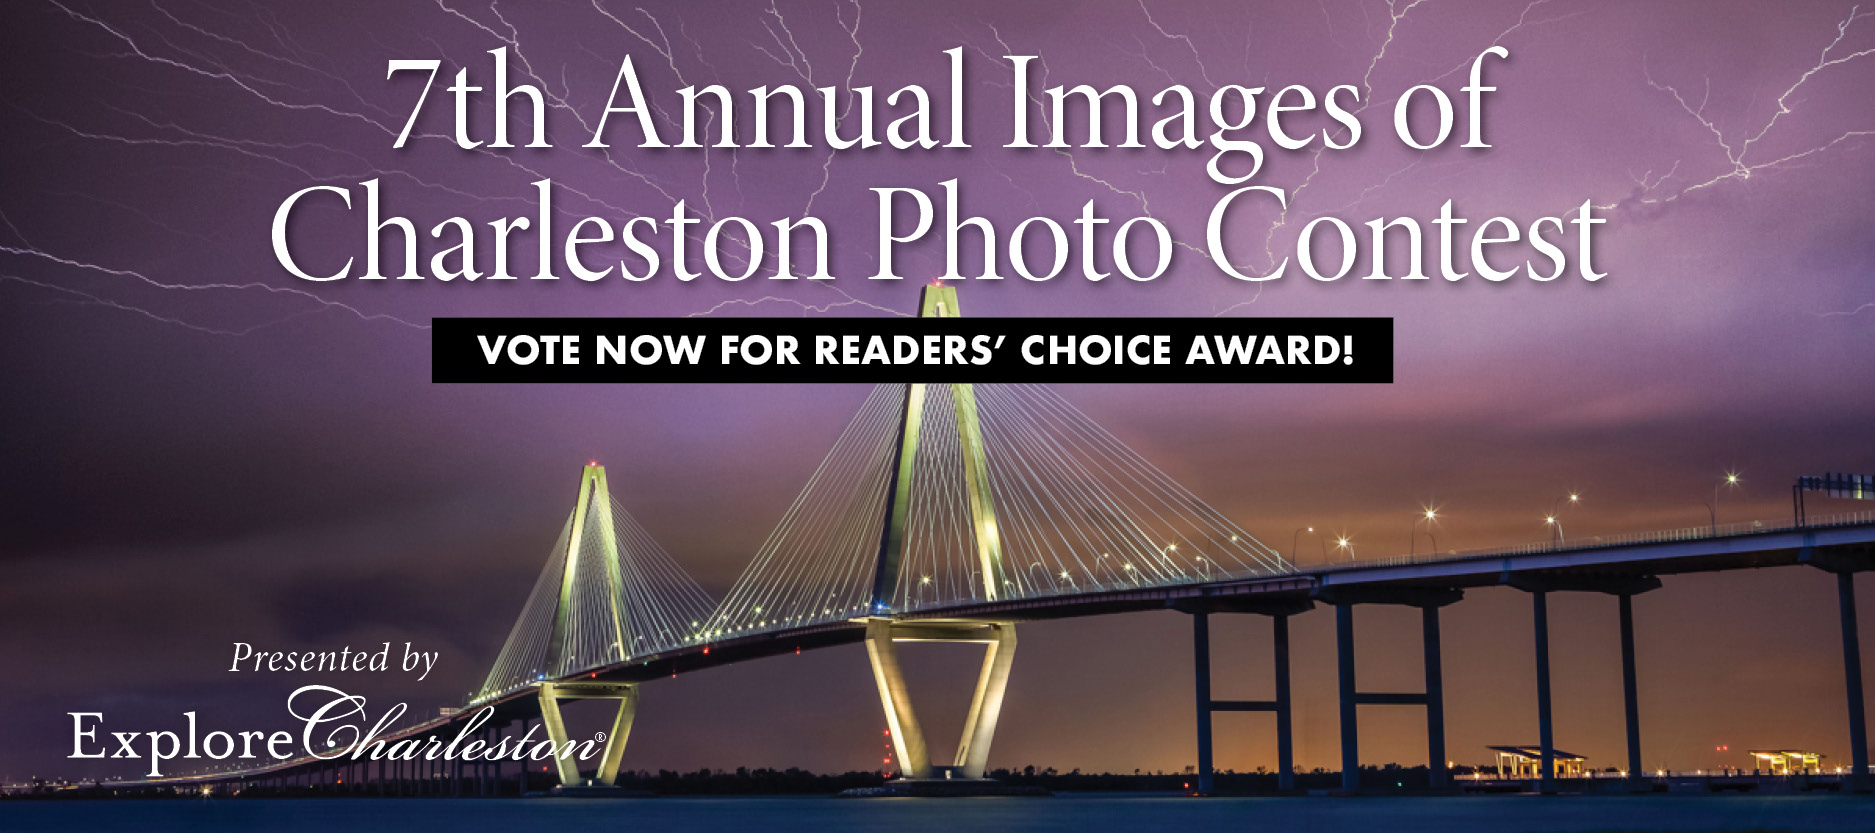 7th Annual Images of Charleston Photo Contest